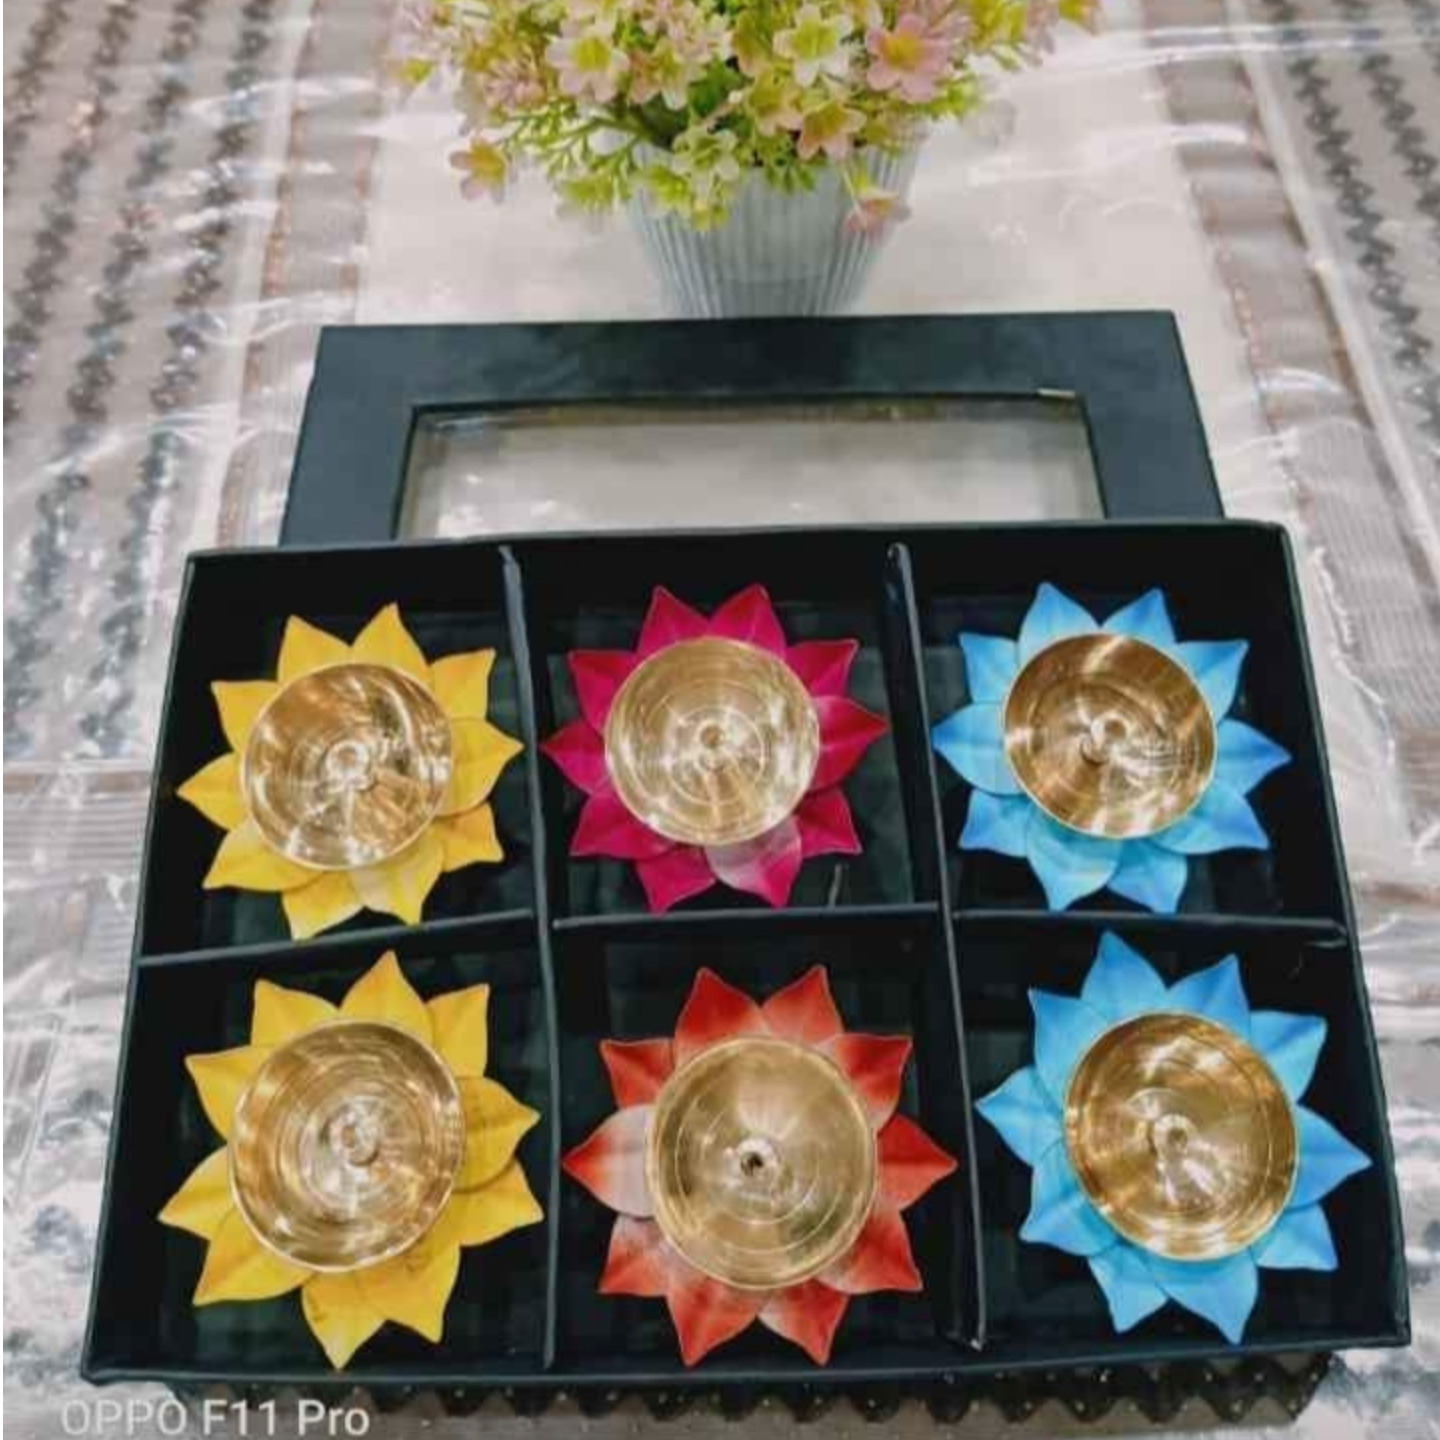 Brass Deepak with Coloured Iron Leafs 3 inch - Set of 6 Diya in Gift Box Z478 C